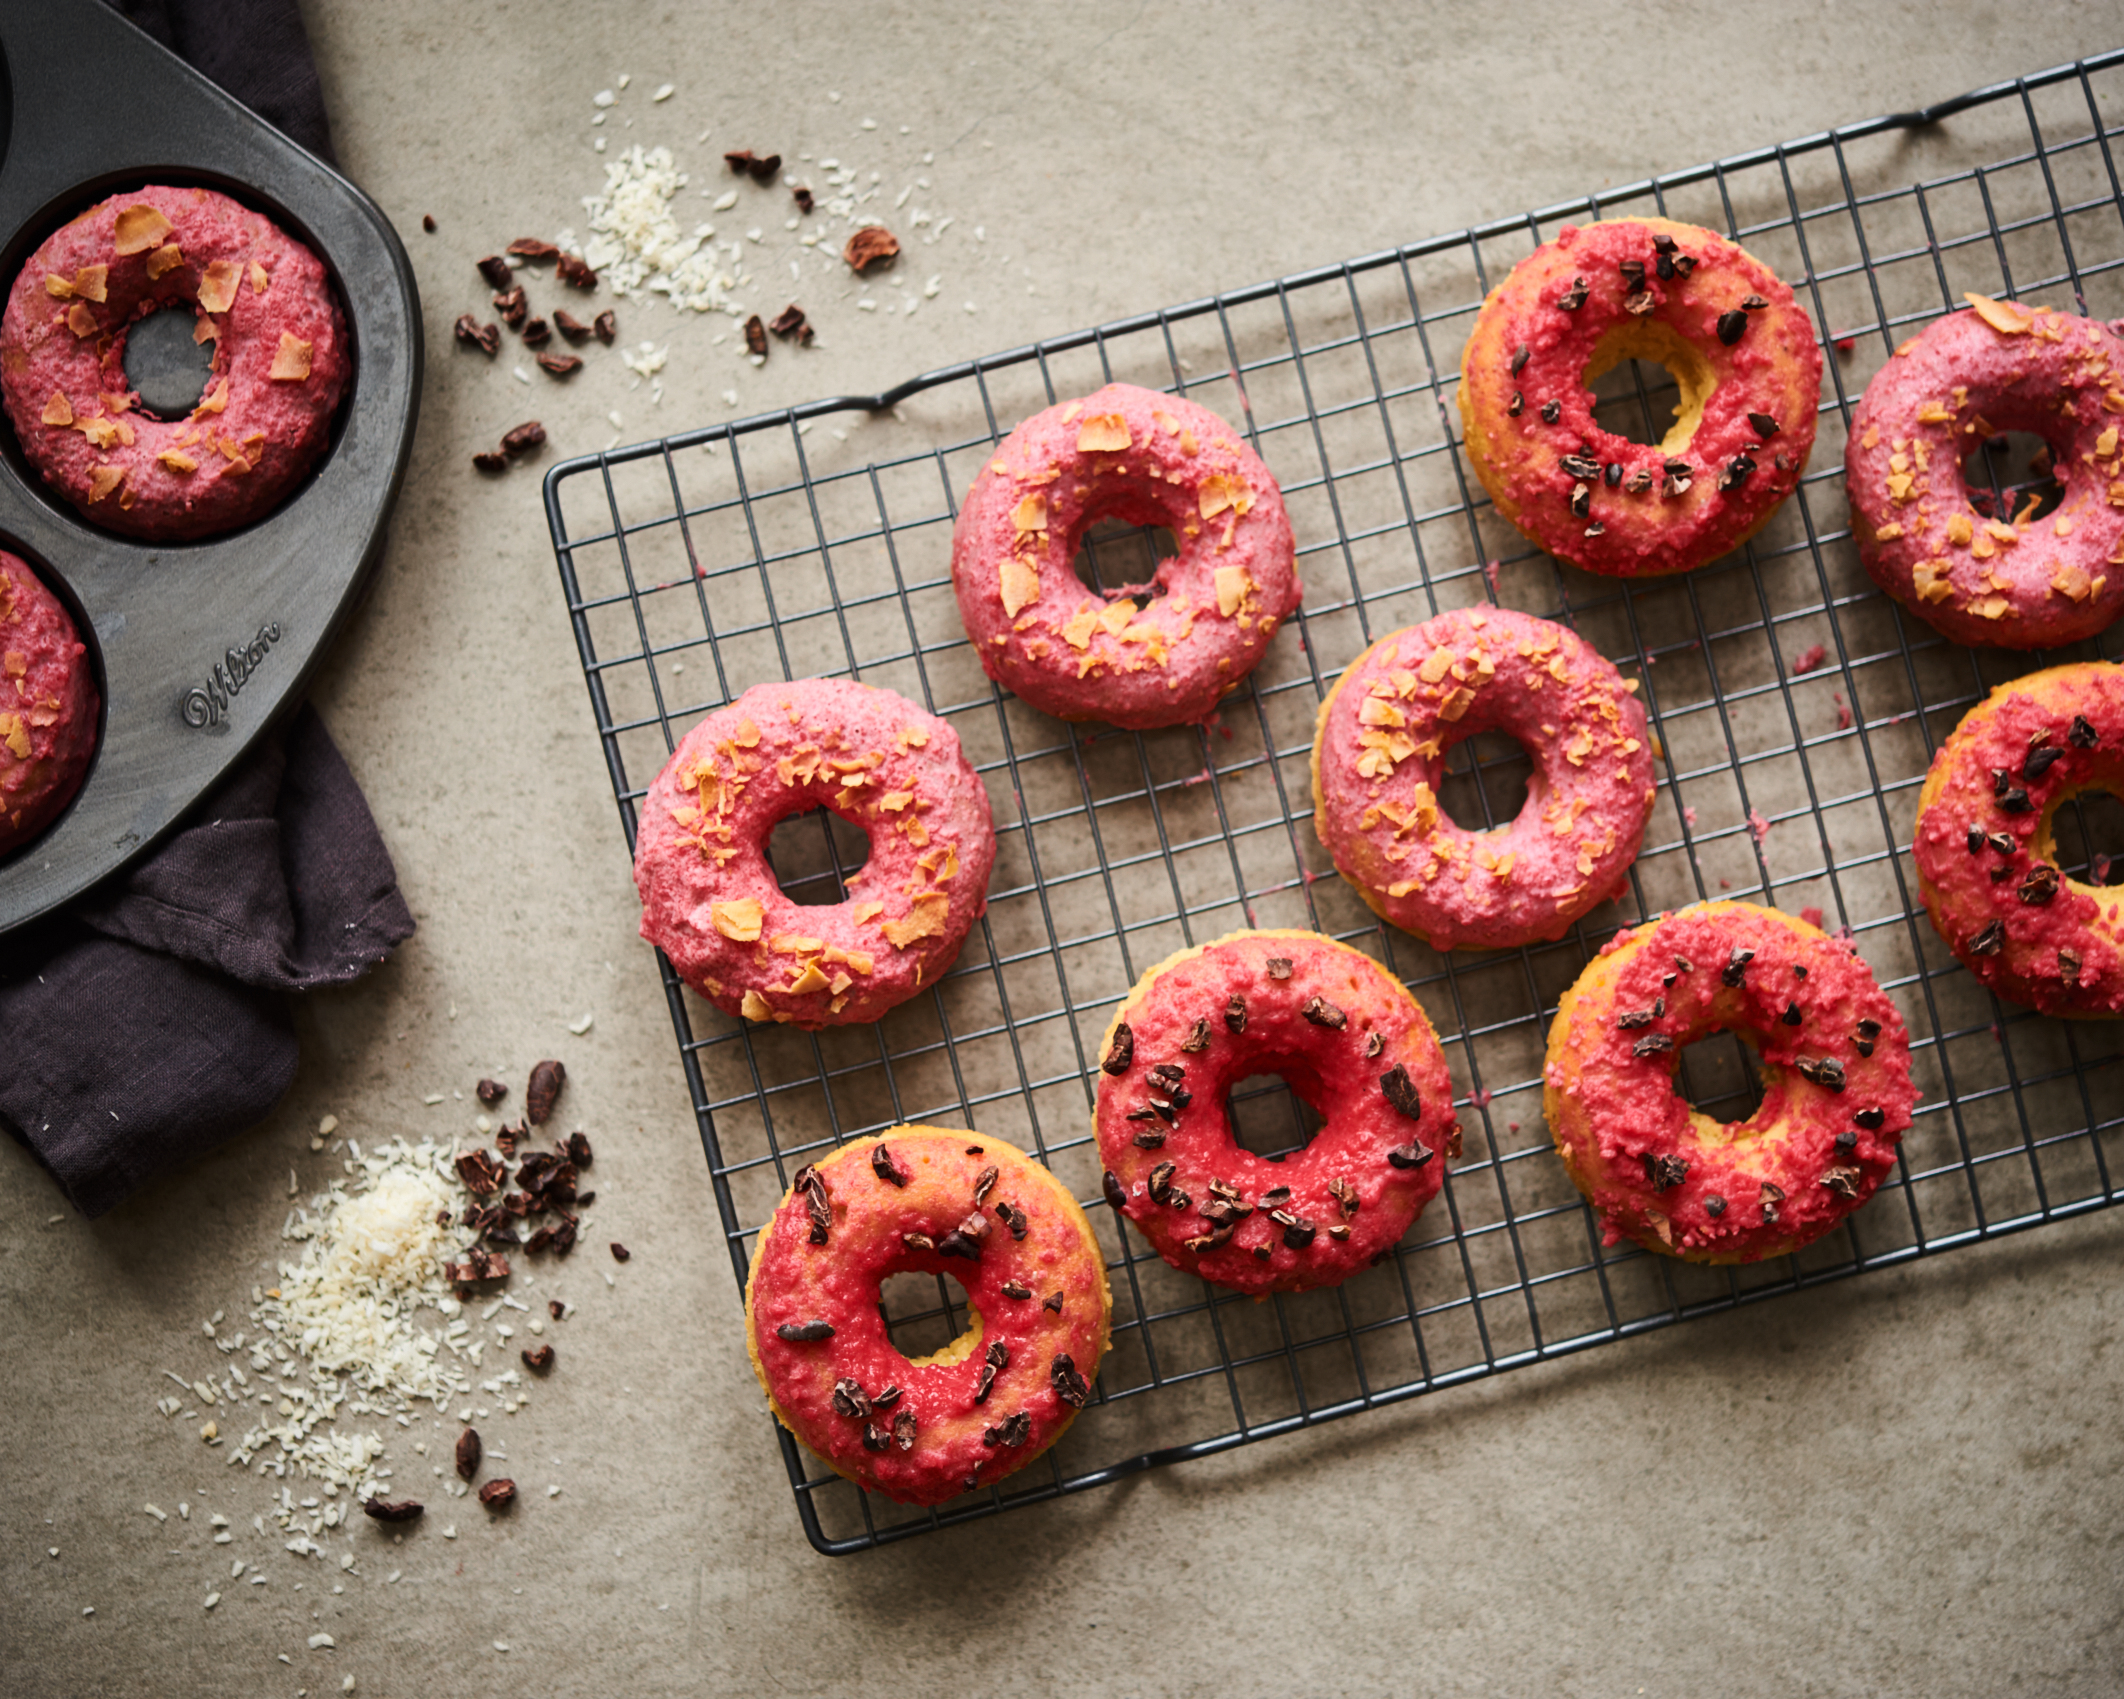 These gluten free and grain free donuts are so amazing because they are paleo and vegan and sugar fee.